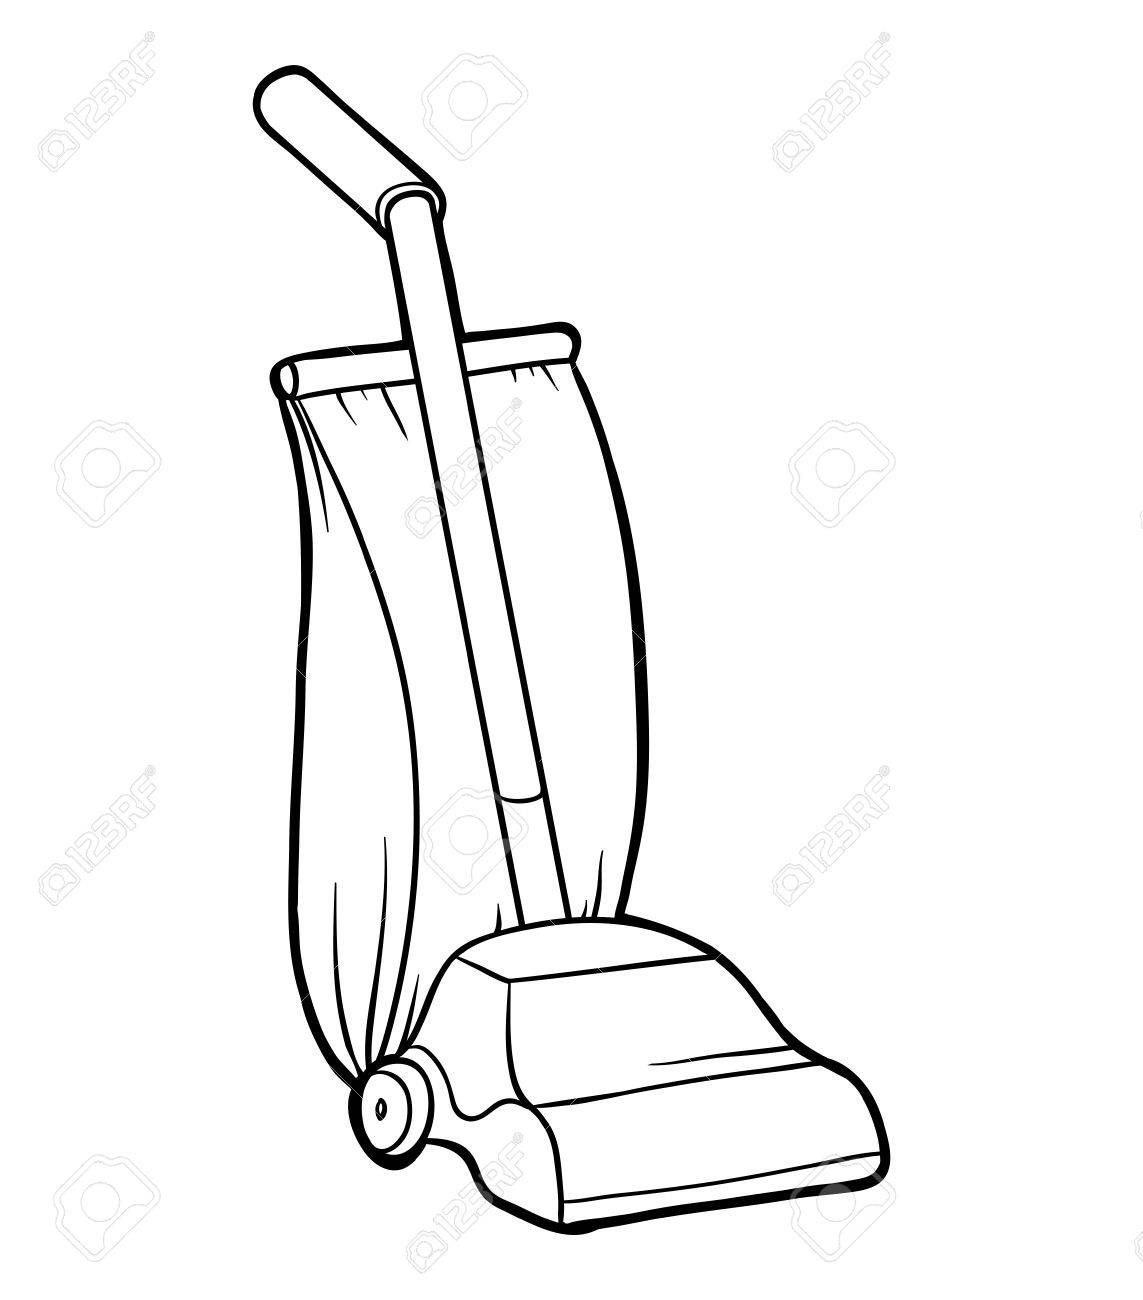 Coloring Book For Children Vacuum Cleaner Stock Vector